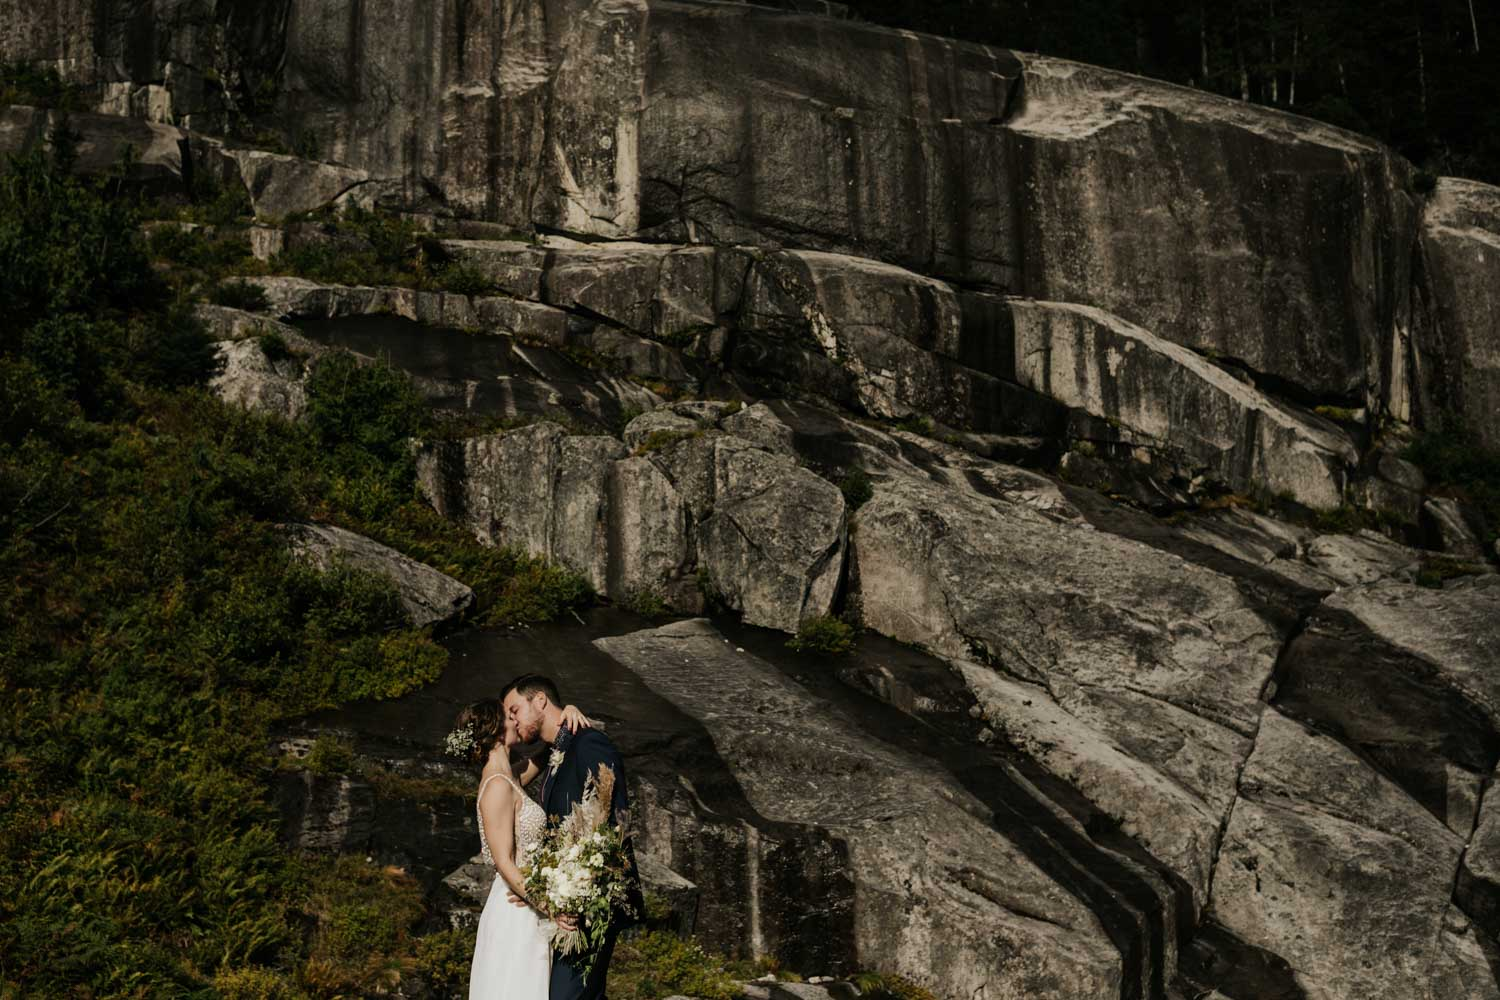 Epic elopement location in the Whistler mountains in BC near Vancouver